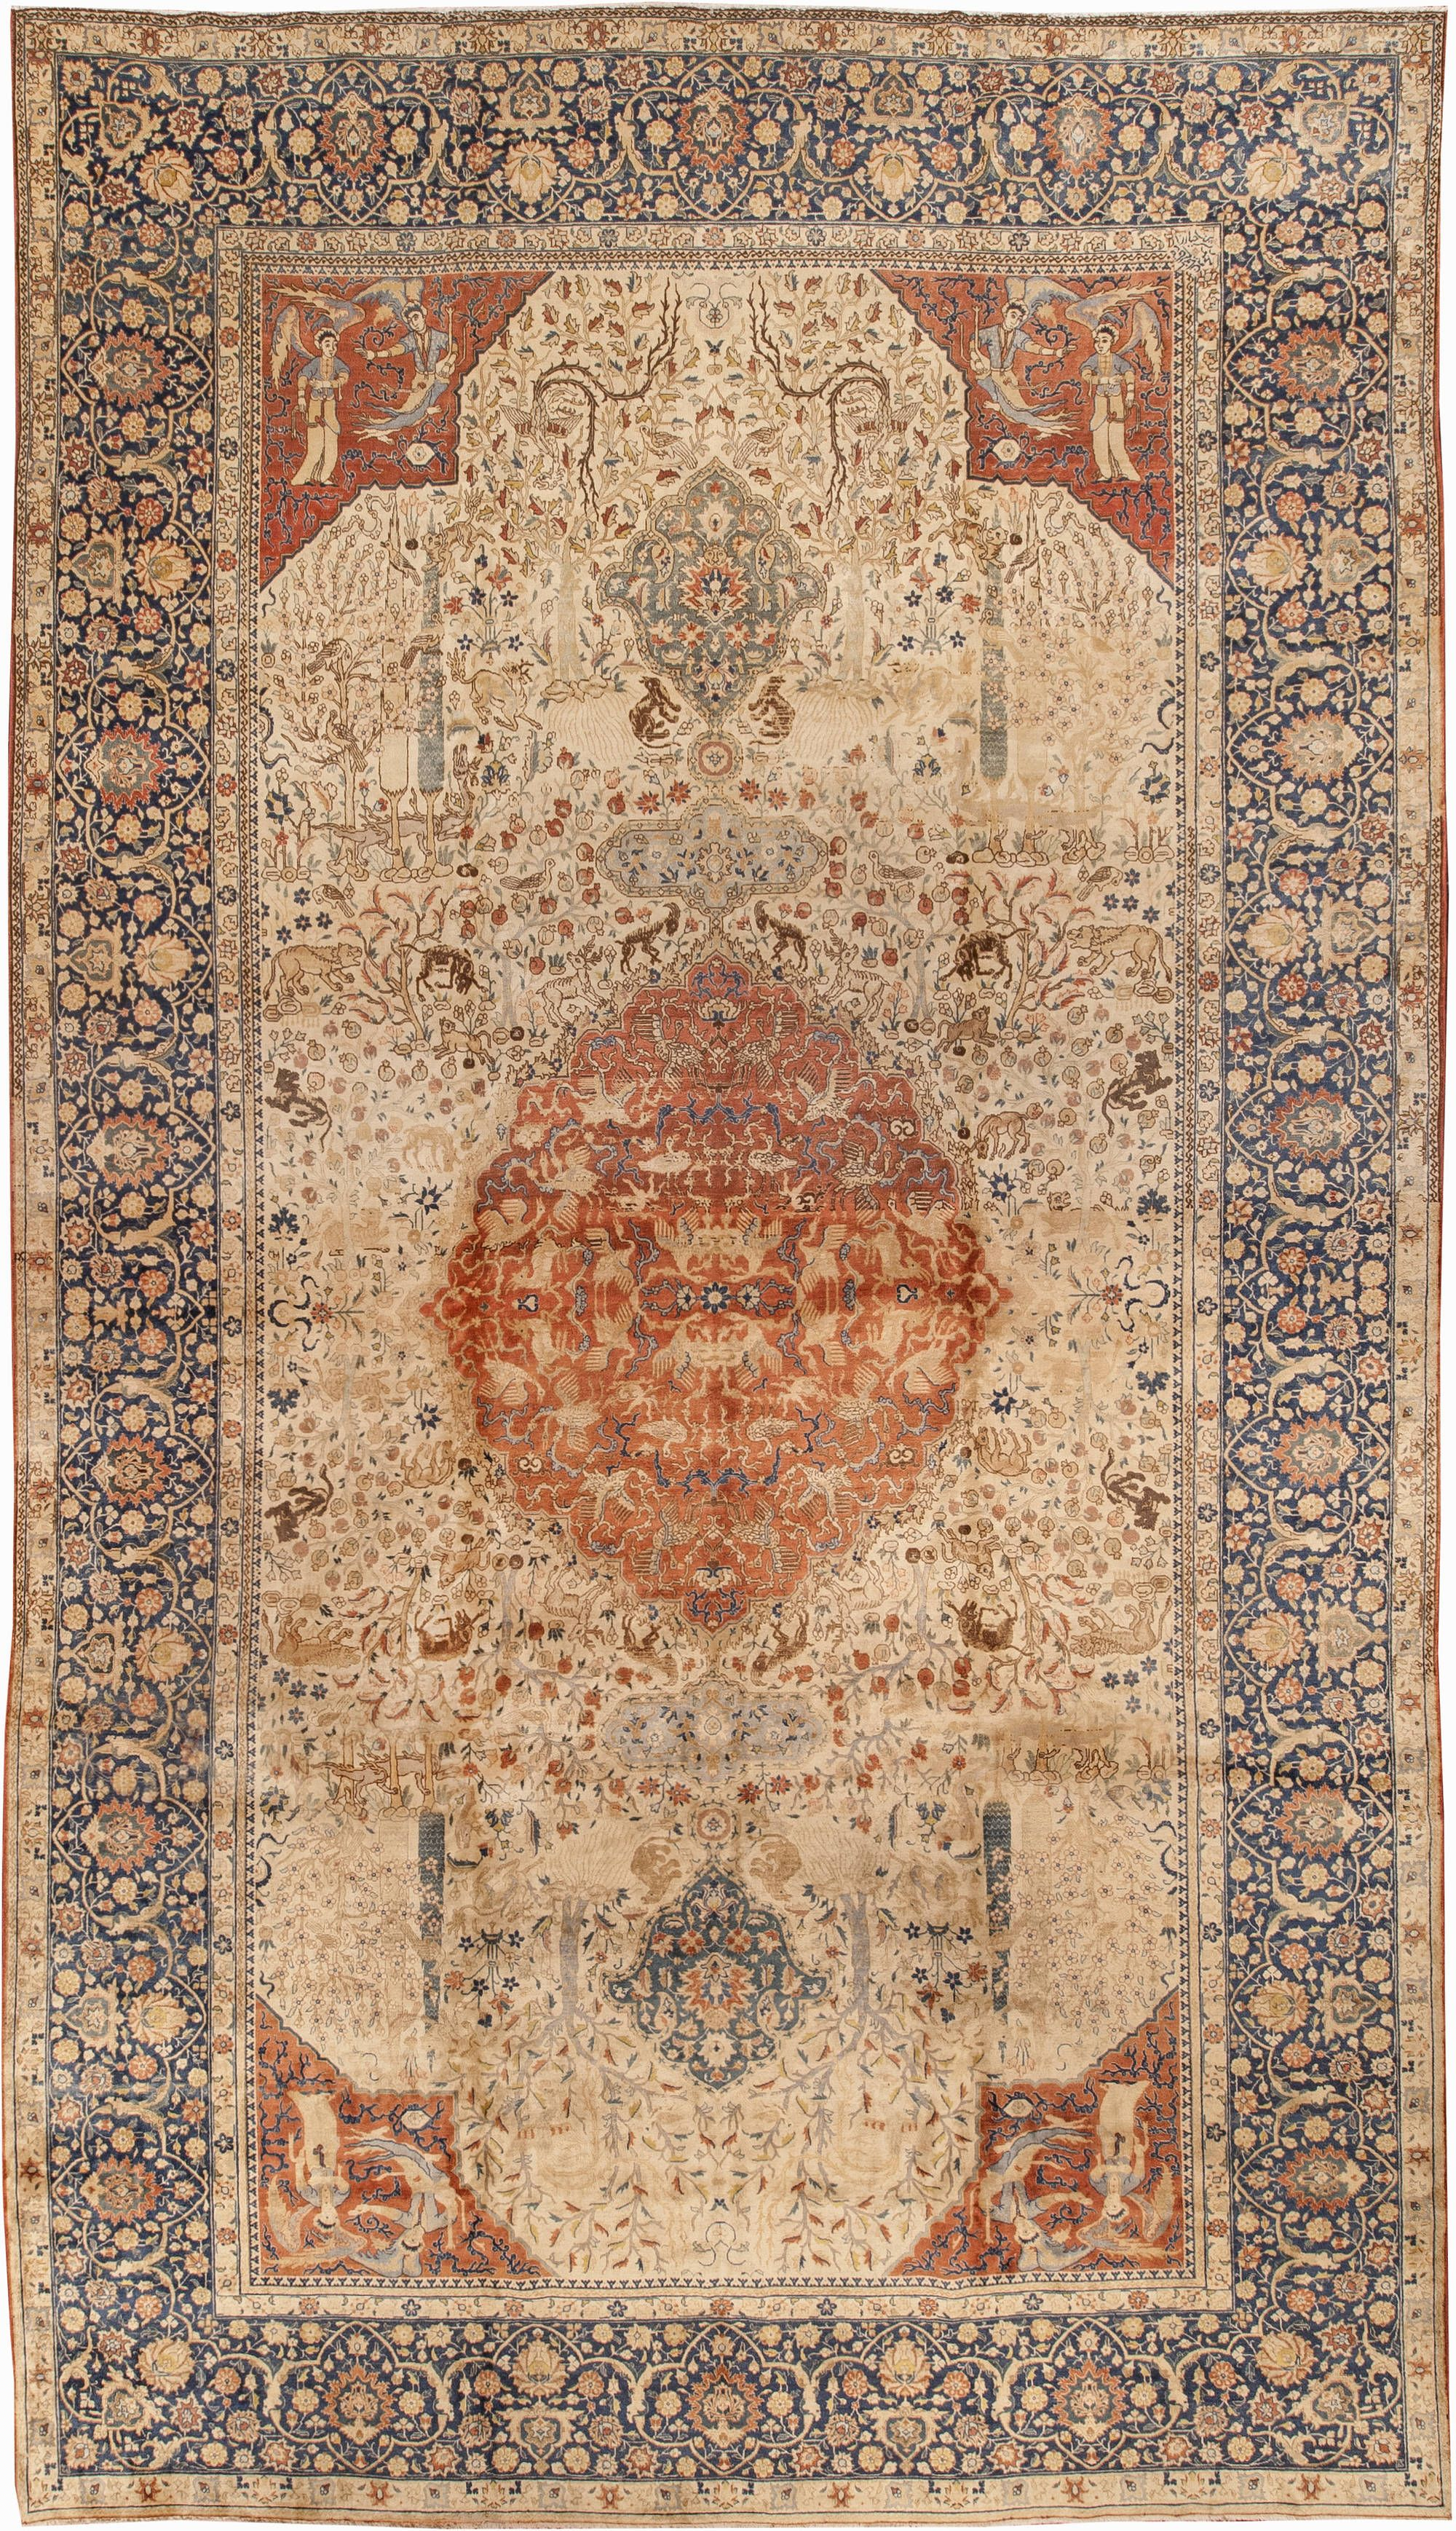 Antique Persian Tabriz Beige Dark Blue Handwoven Wool Carpet Bb0642 By Dlb Antique Persian Carpet Antique Carpets Rugs On Carpet